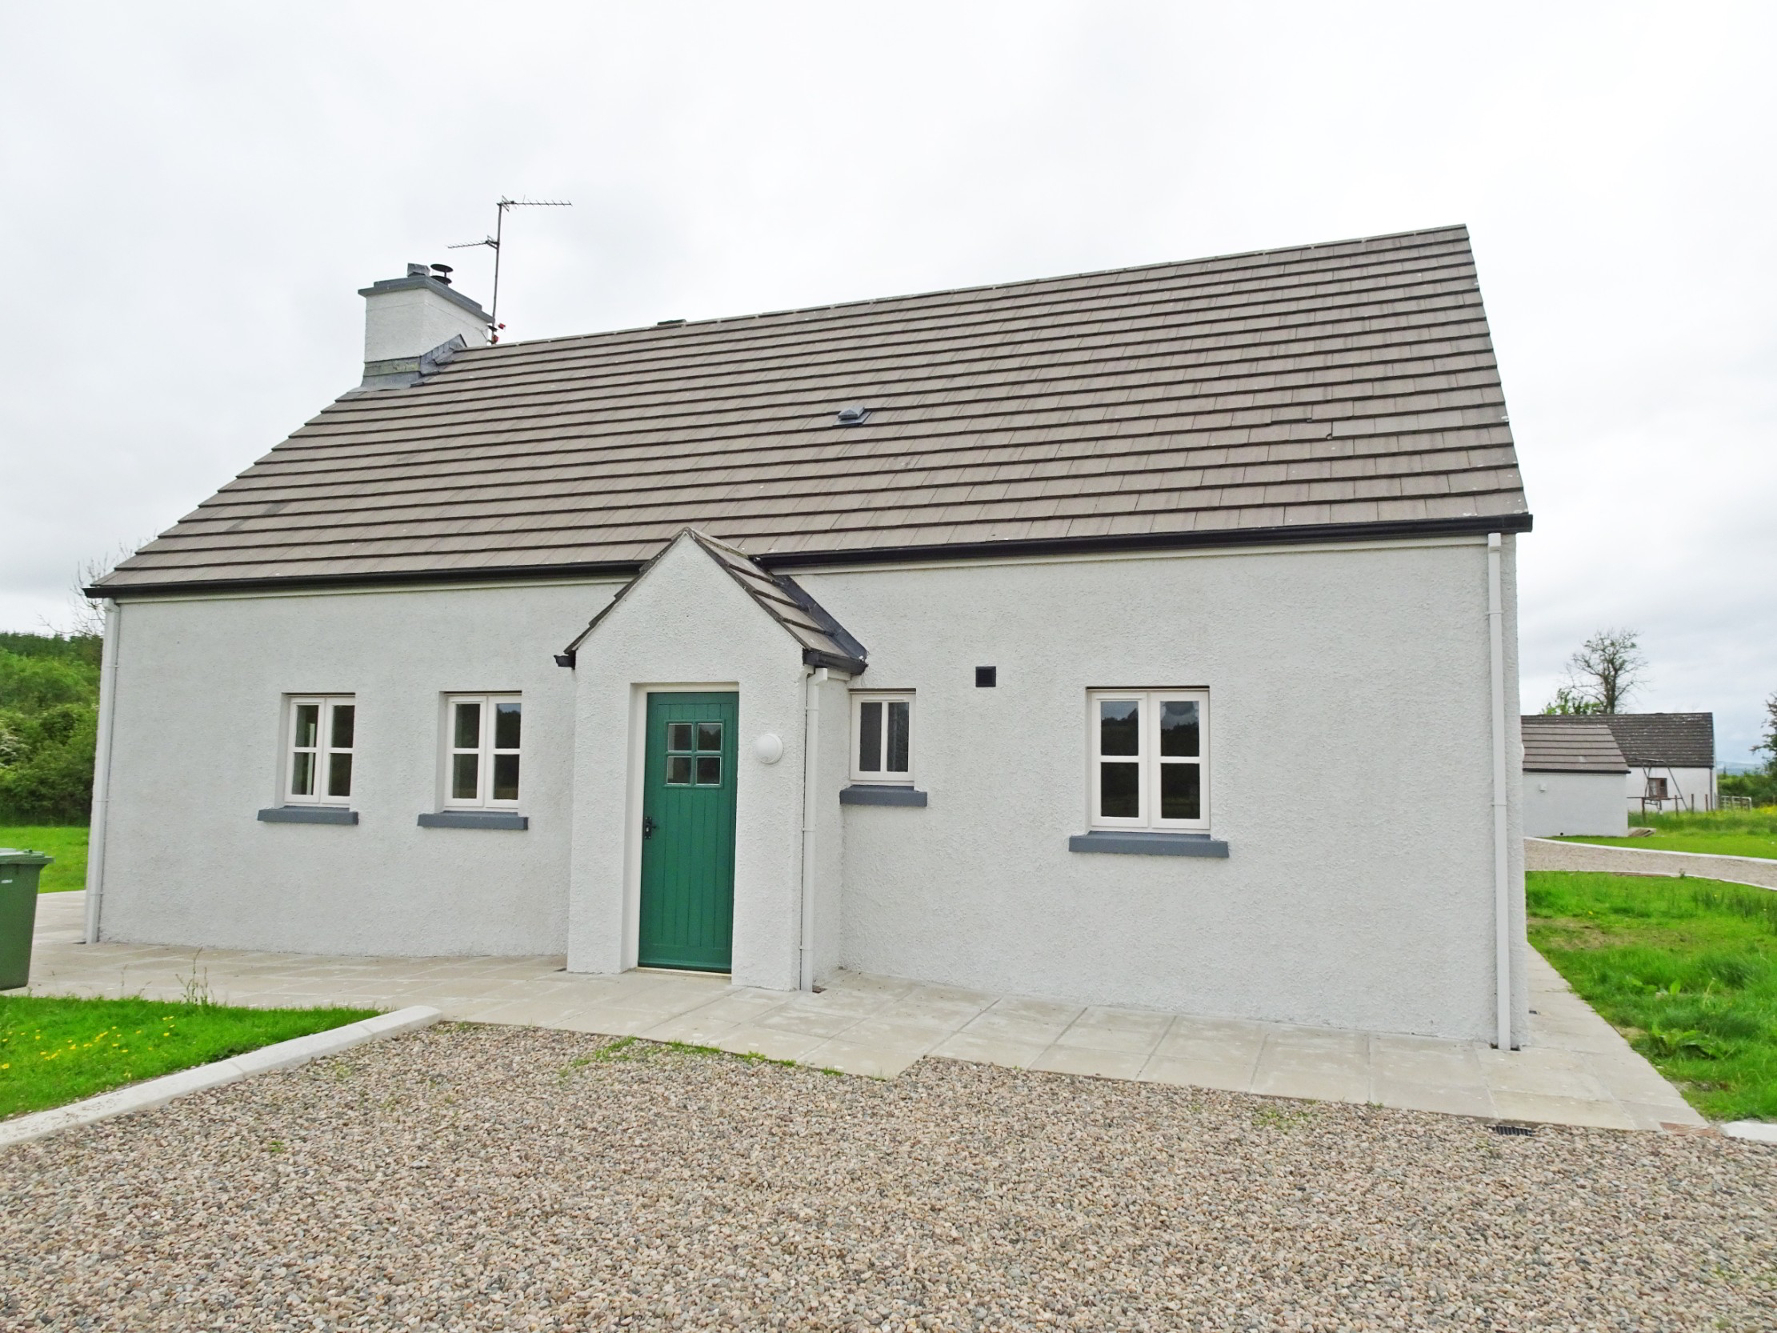 Photo 1 of Crehen Cottage, Corraquil Country Cottages, Teemore, Derrylin